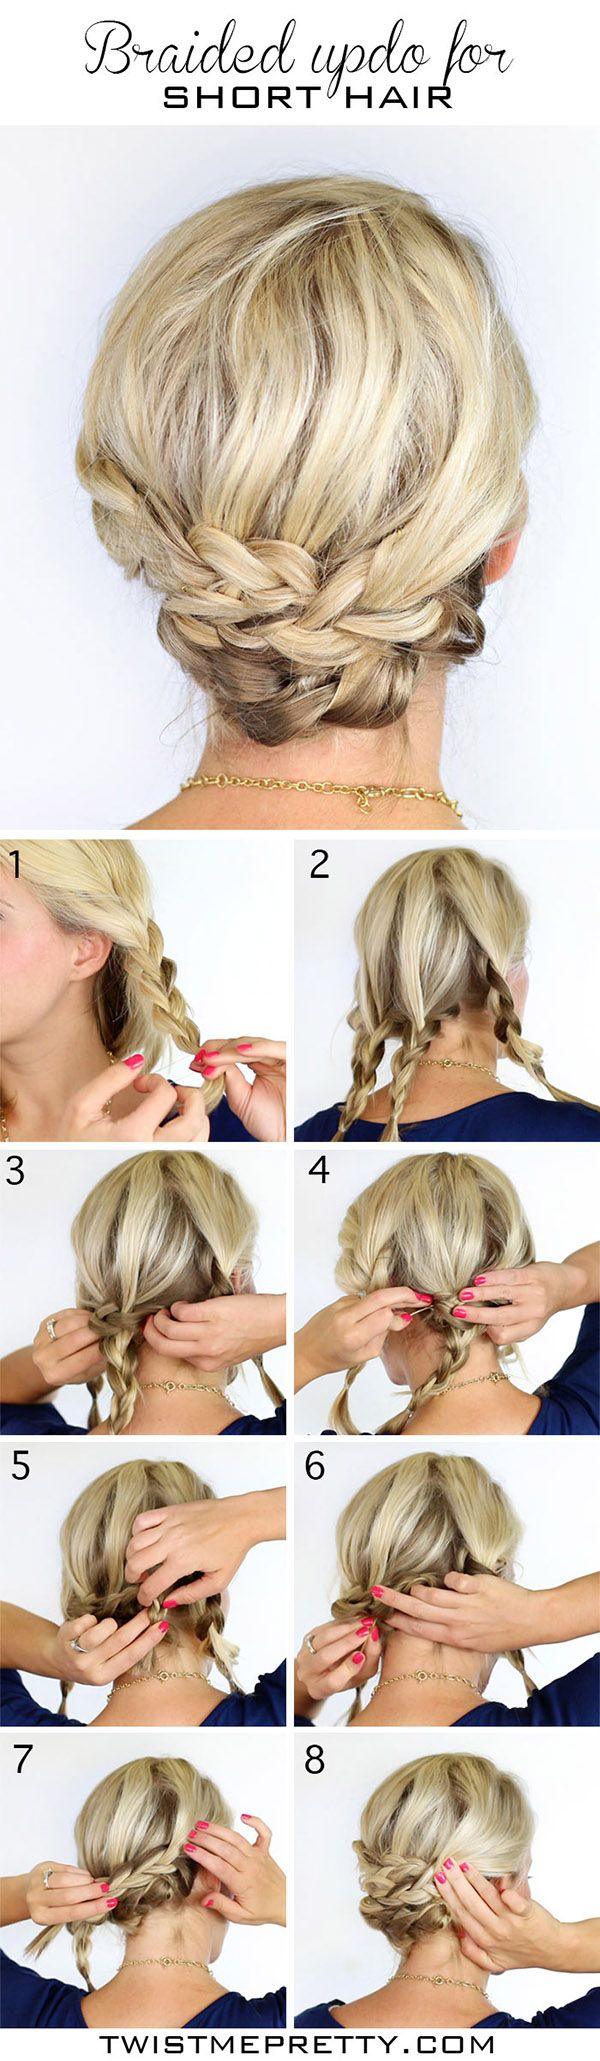 10 DIY Wedding Hairstyles with Tutorials to Try on Your Own